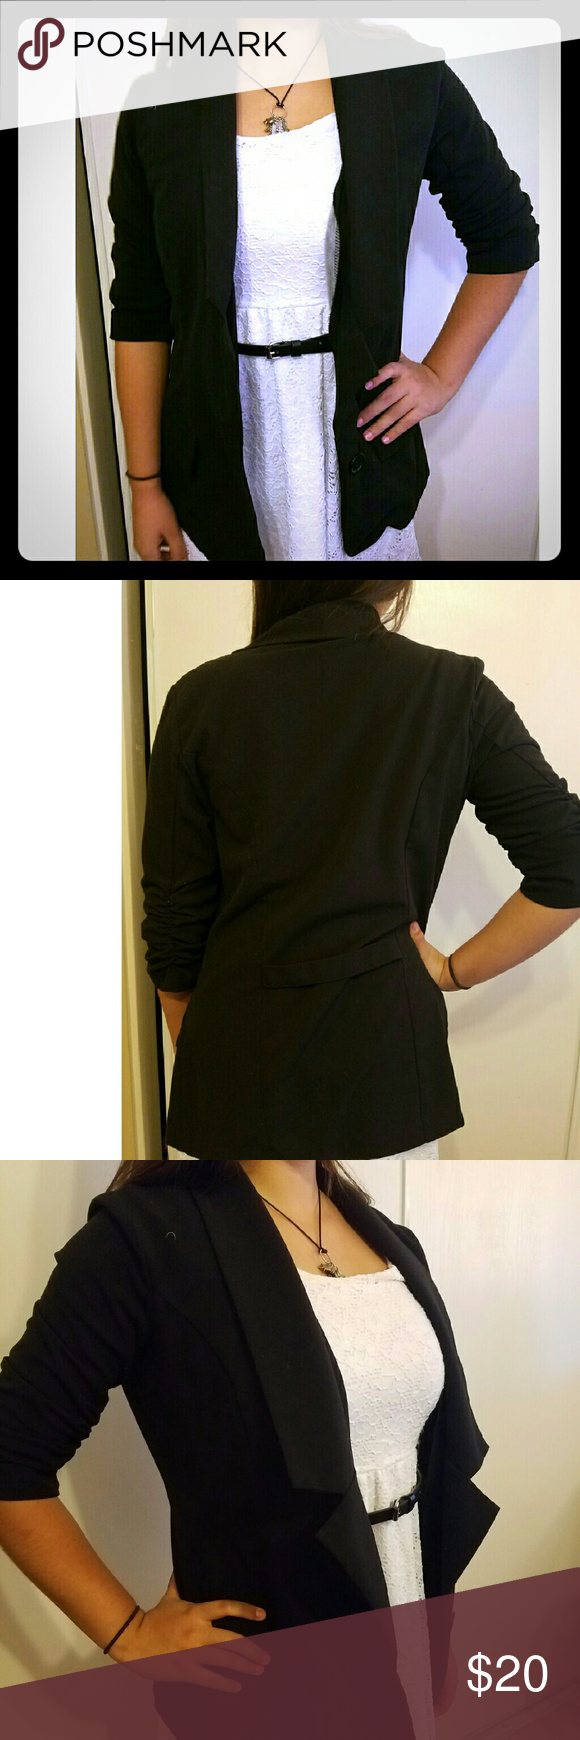 "Black Blazer Casual Black one button blazer with ruched elbow details. Very cute and light to be worn with various outfits. Model measurements 5'6"" 35-26-36 Jackets & Coats Blazers"